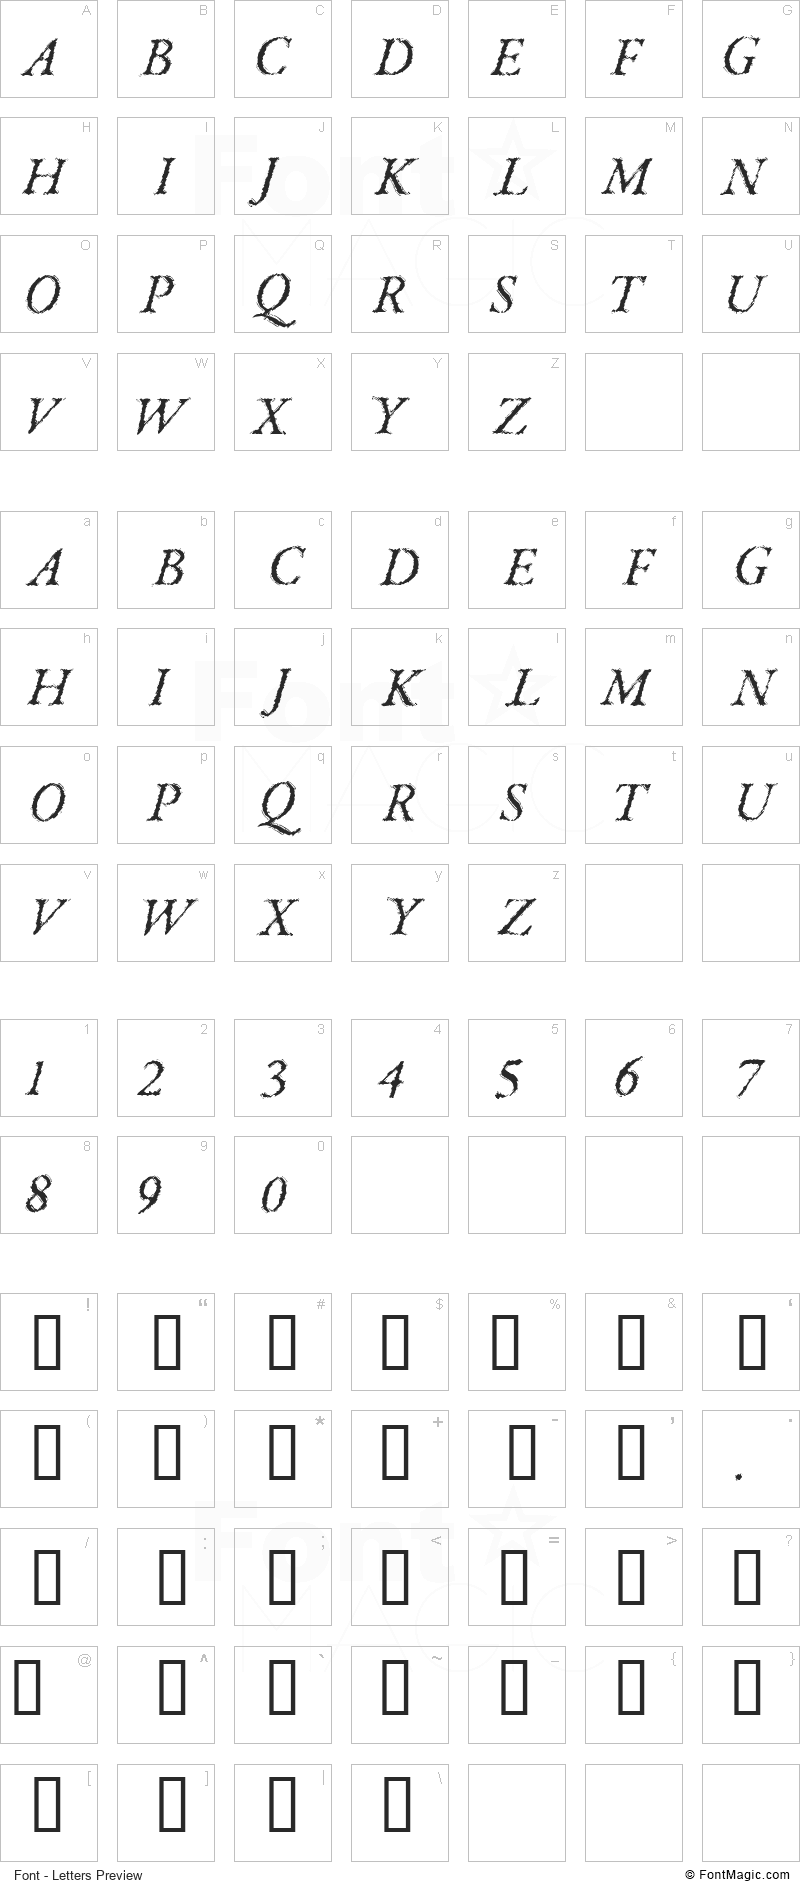 Parkinson Font - All Latters Preview Chart